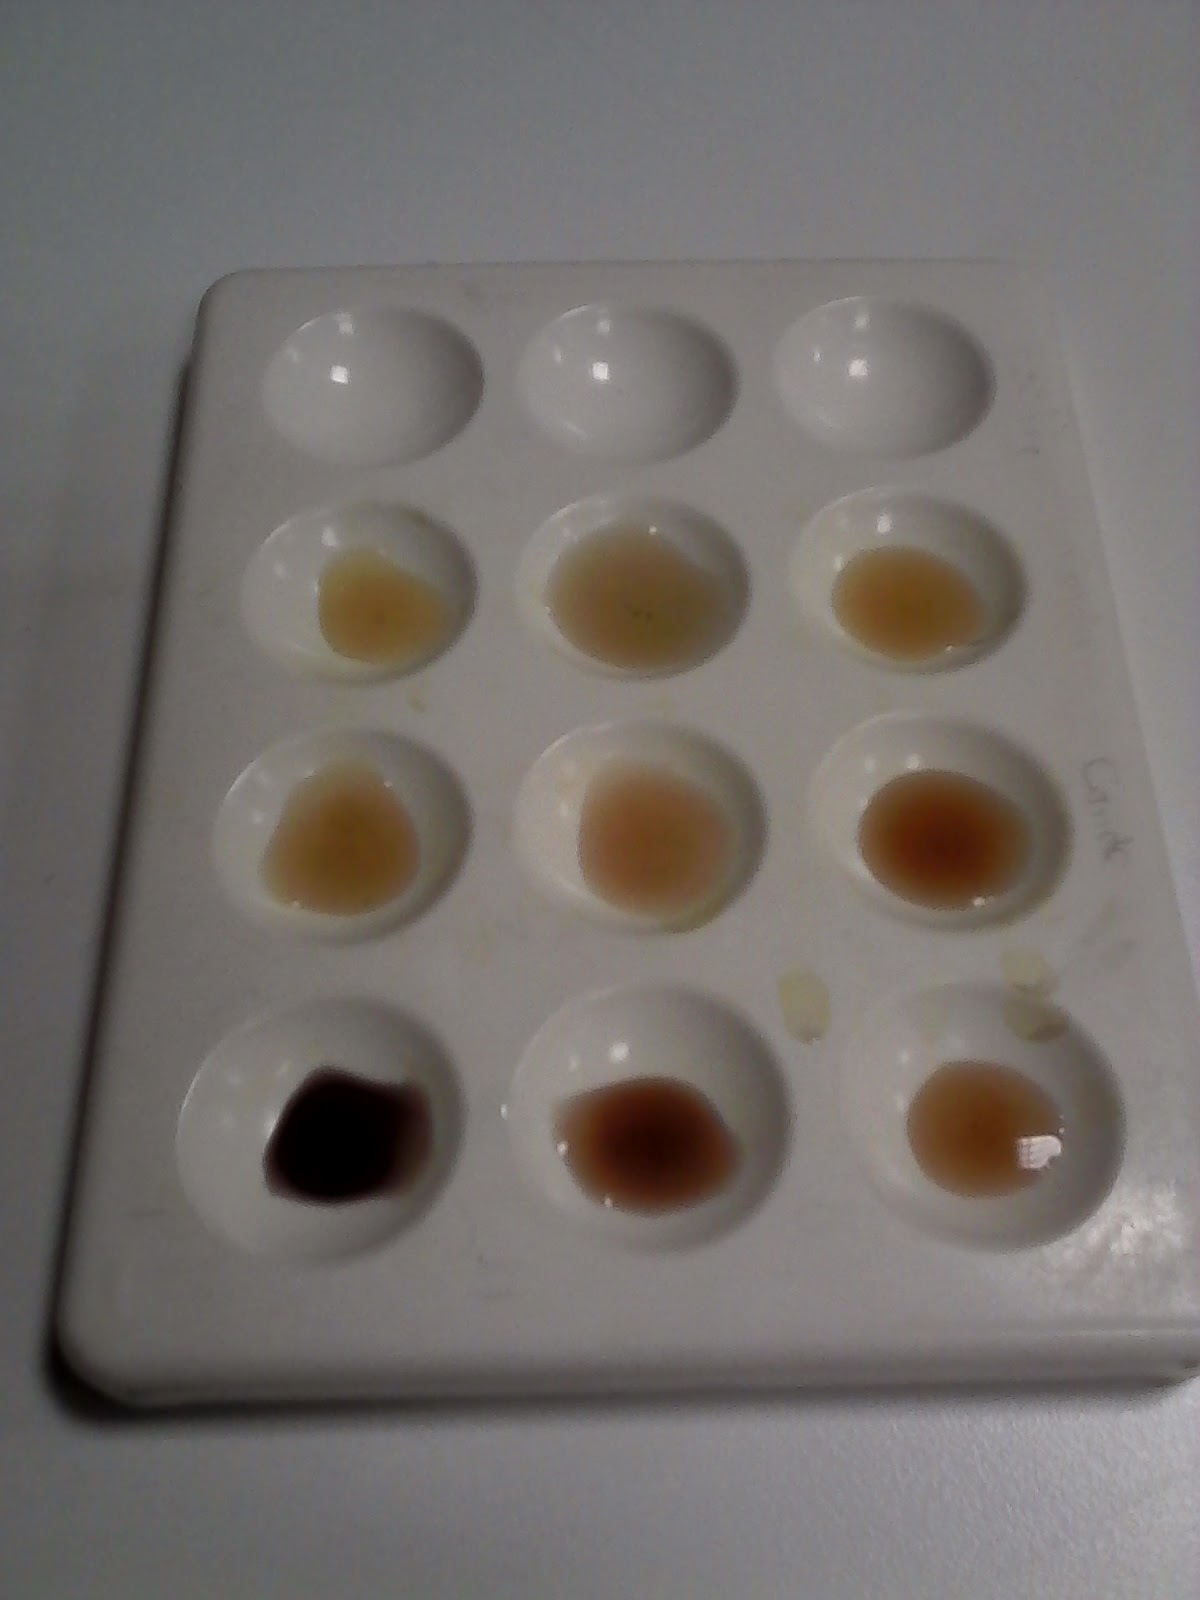 amylase starch experiment results